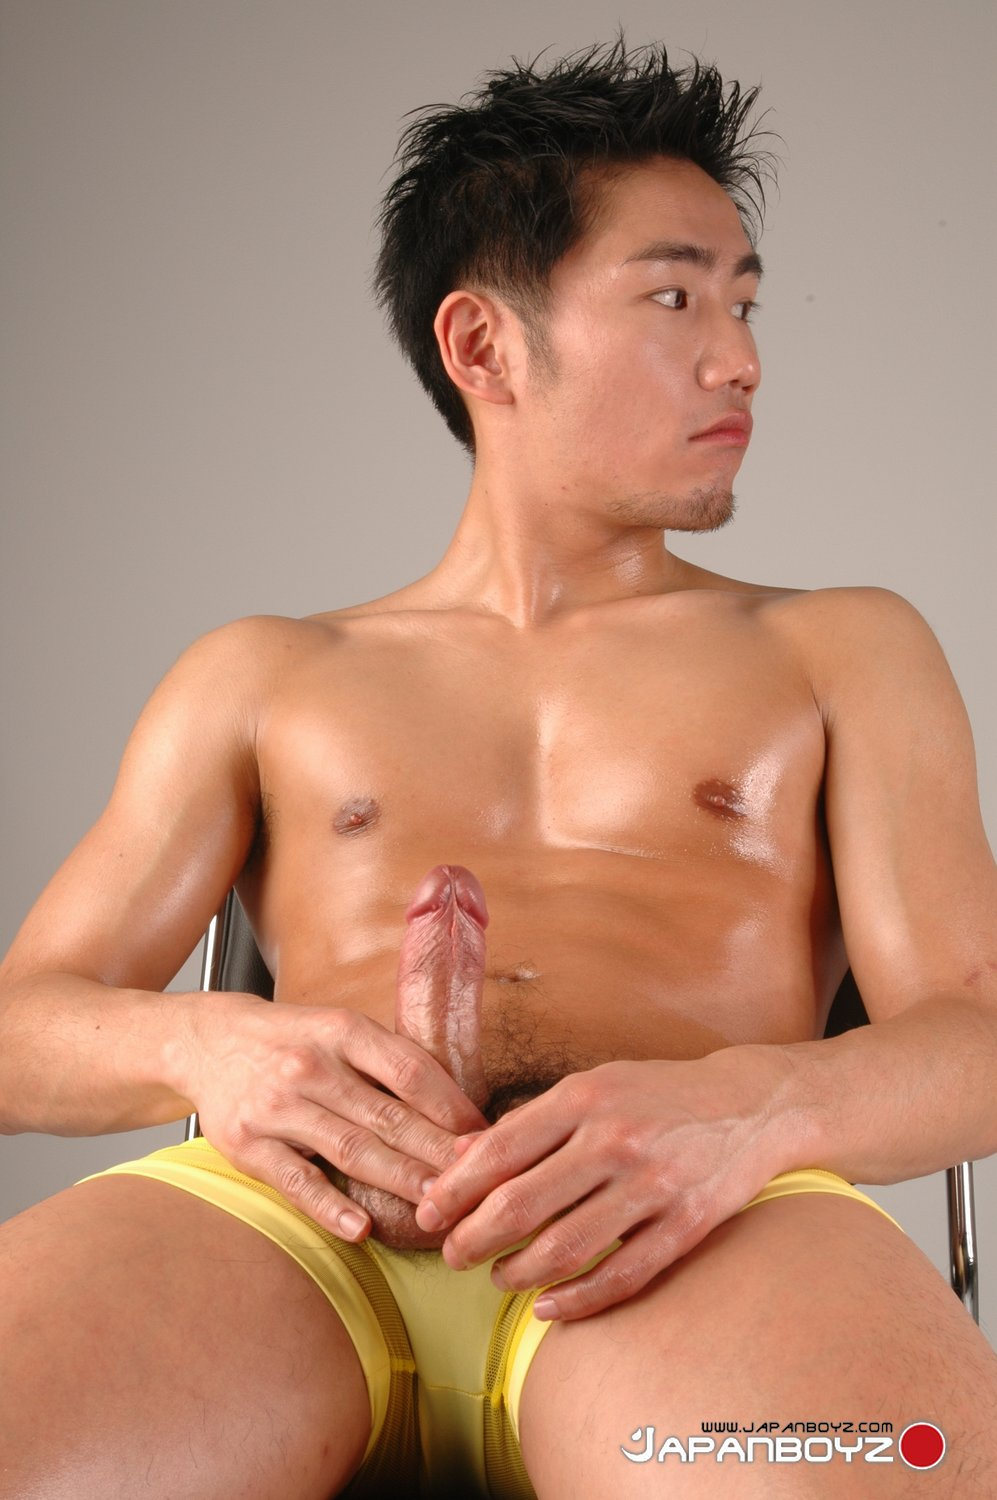 JapanBoyz-Erotic-Ninja-1-The-Hitman-3-torrent-asian-03 Asian Twink Gets Fucked Bareback with Cum in the Ass